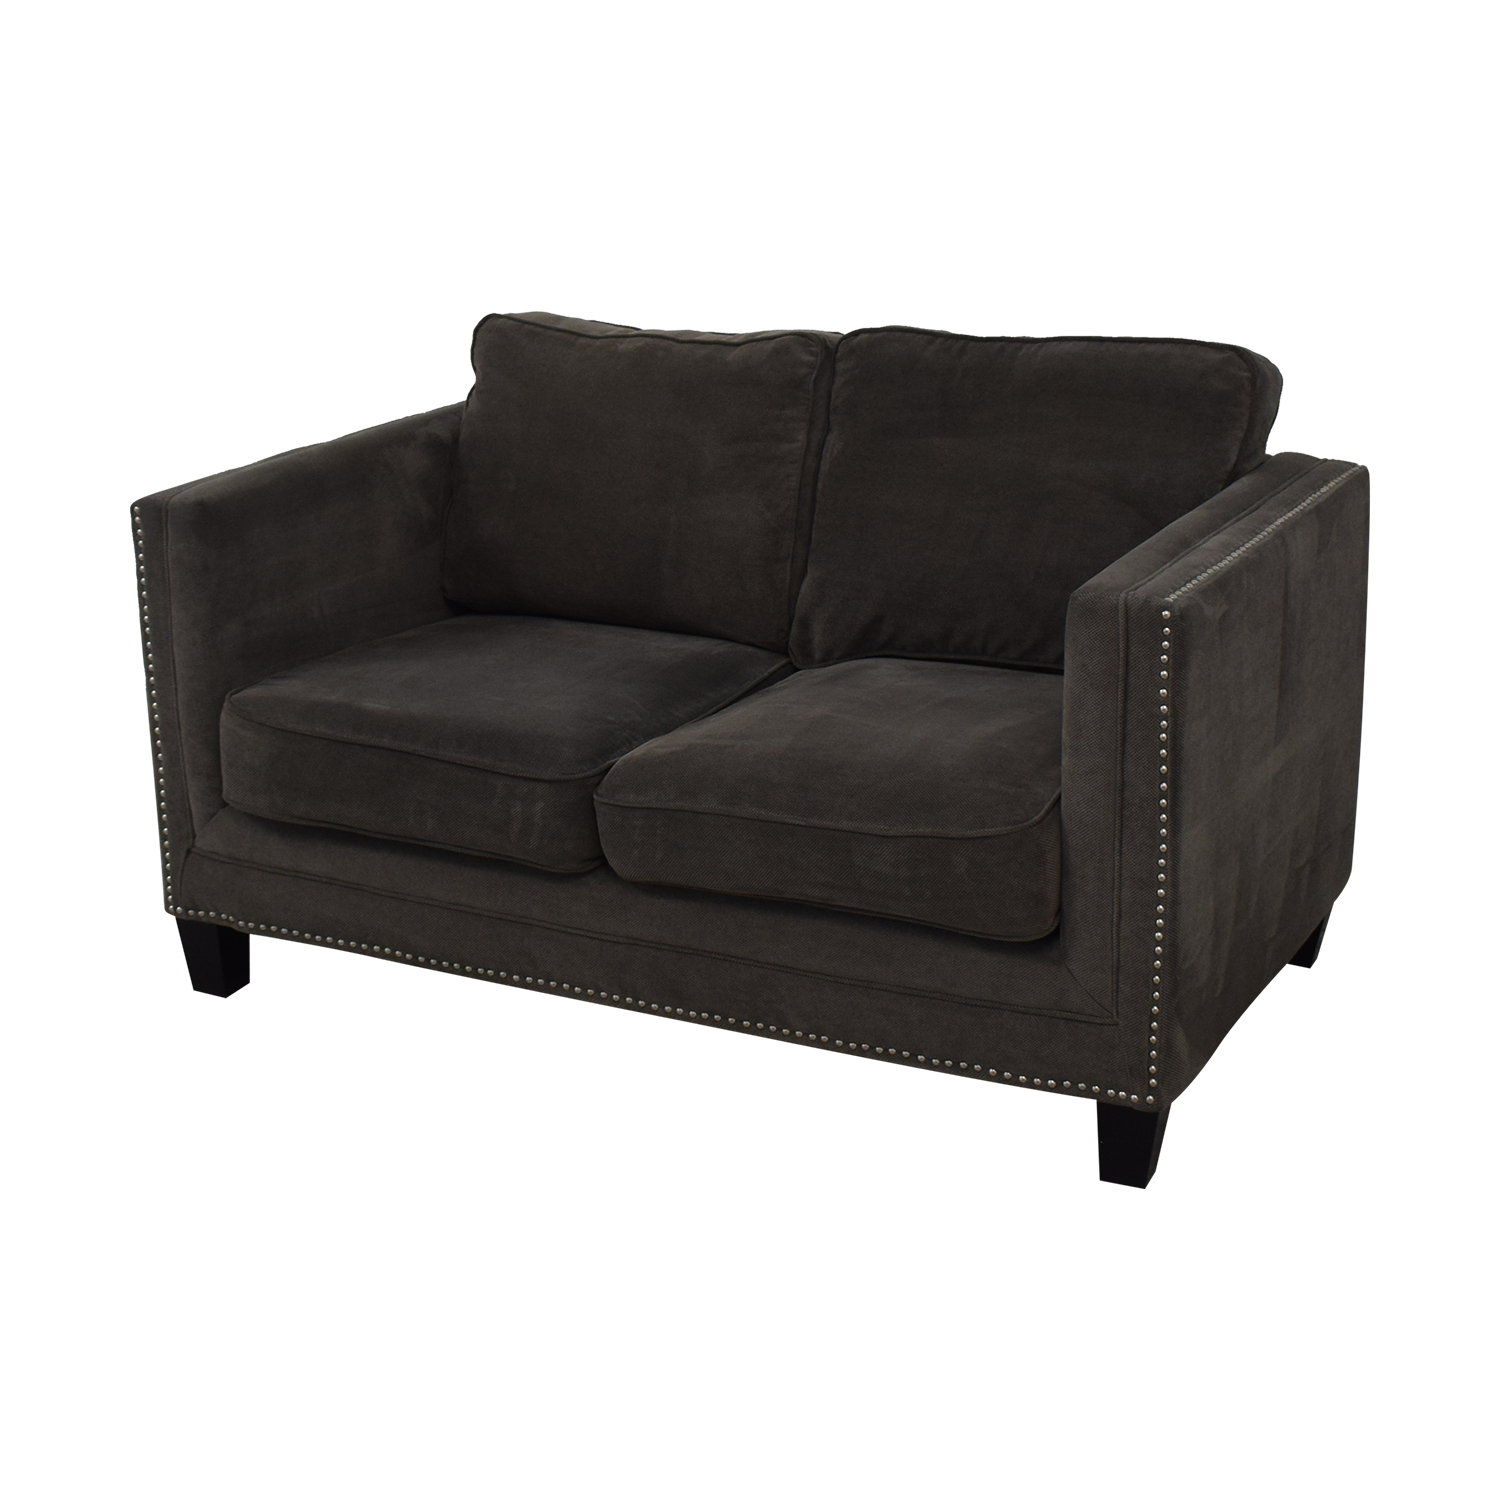 buy Emerald Home Furnishings Carlton Loveseat Emerald Home Furnishings